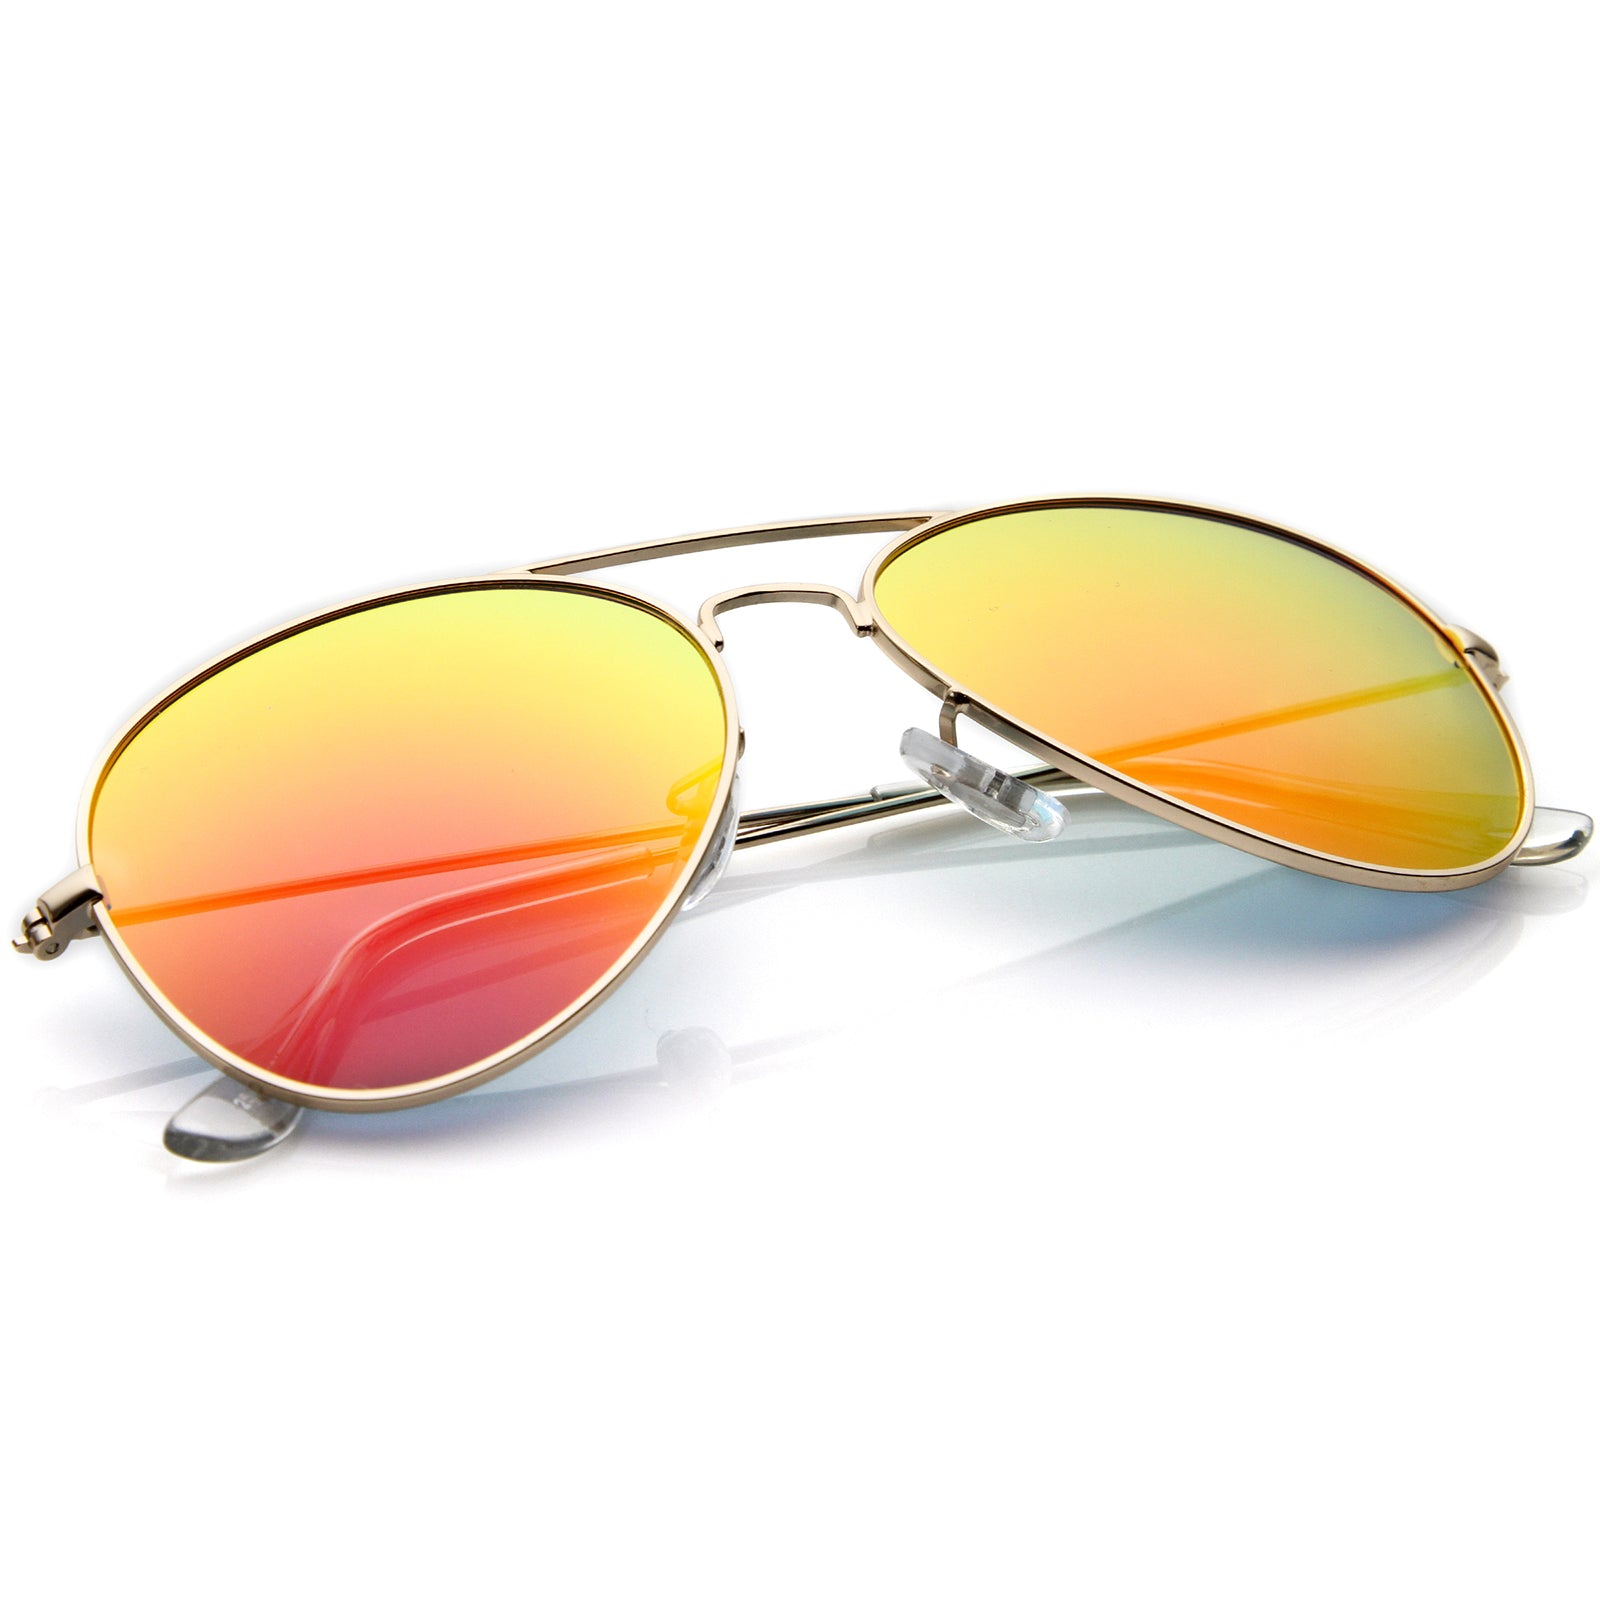 Premium Nickel Plated Frame Multi-Coated Mirror Lens Aviator Sunglasses 59mm - sunglass.la - 8